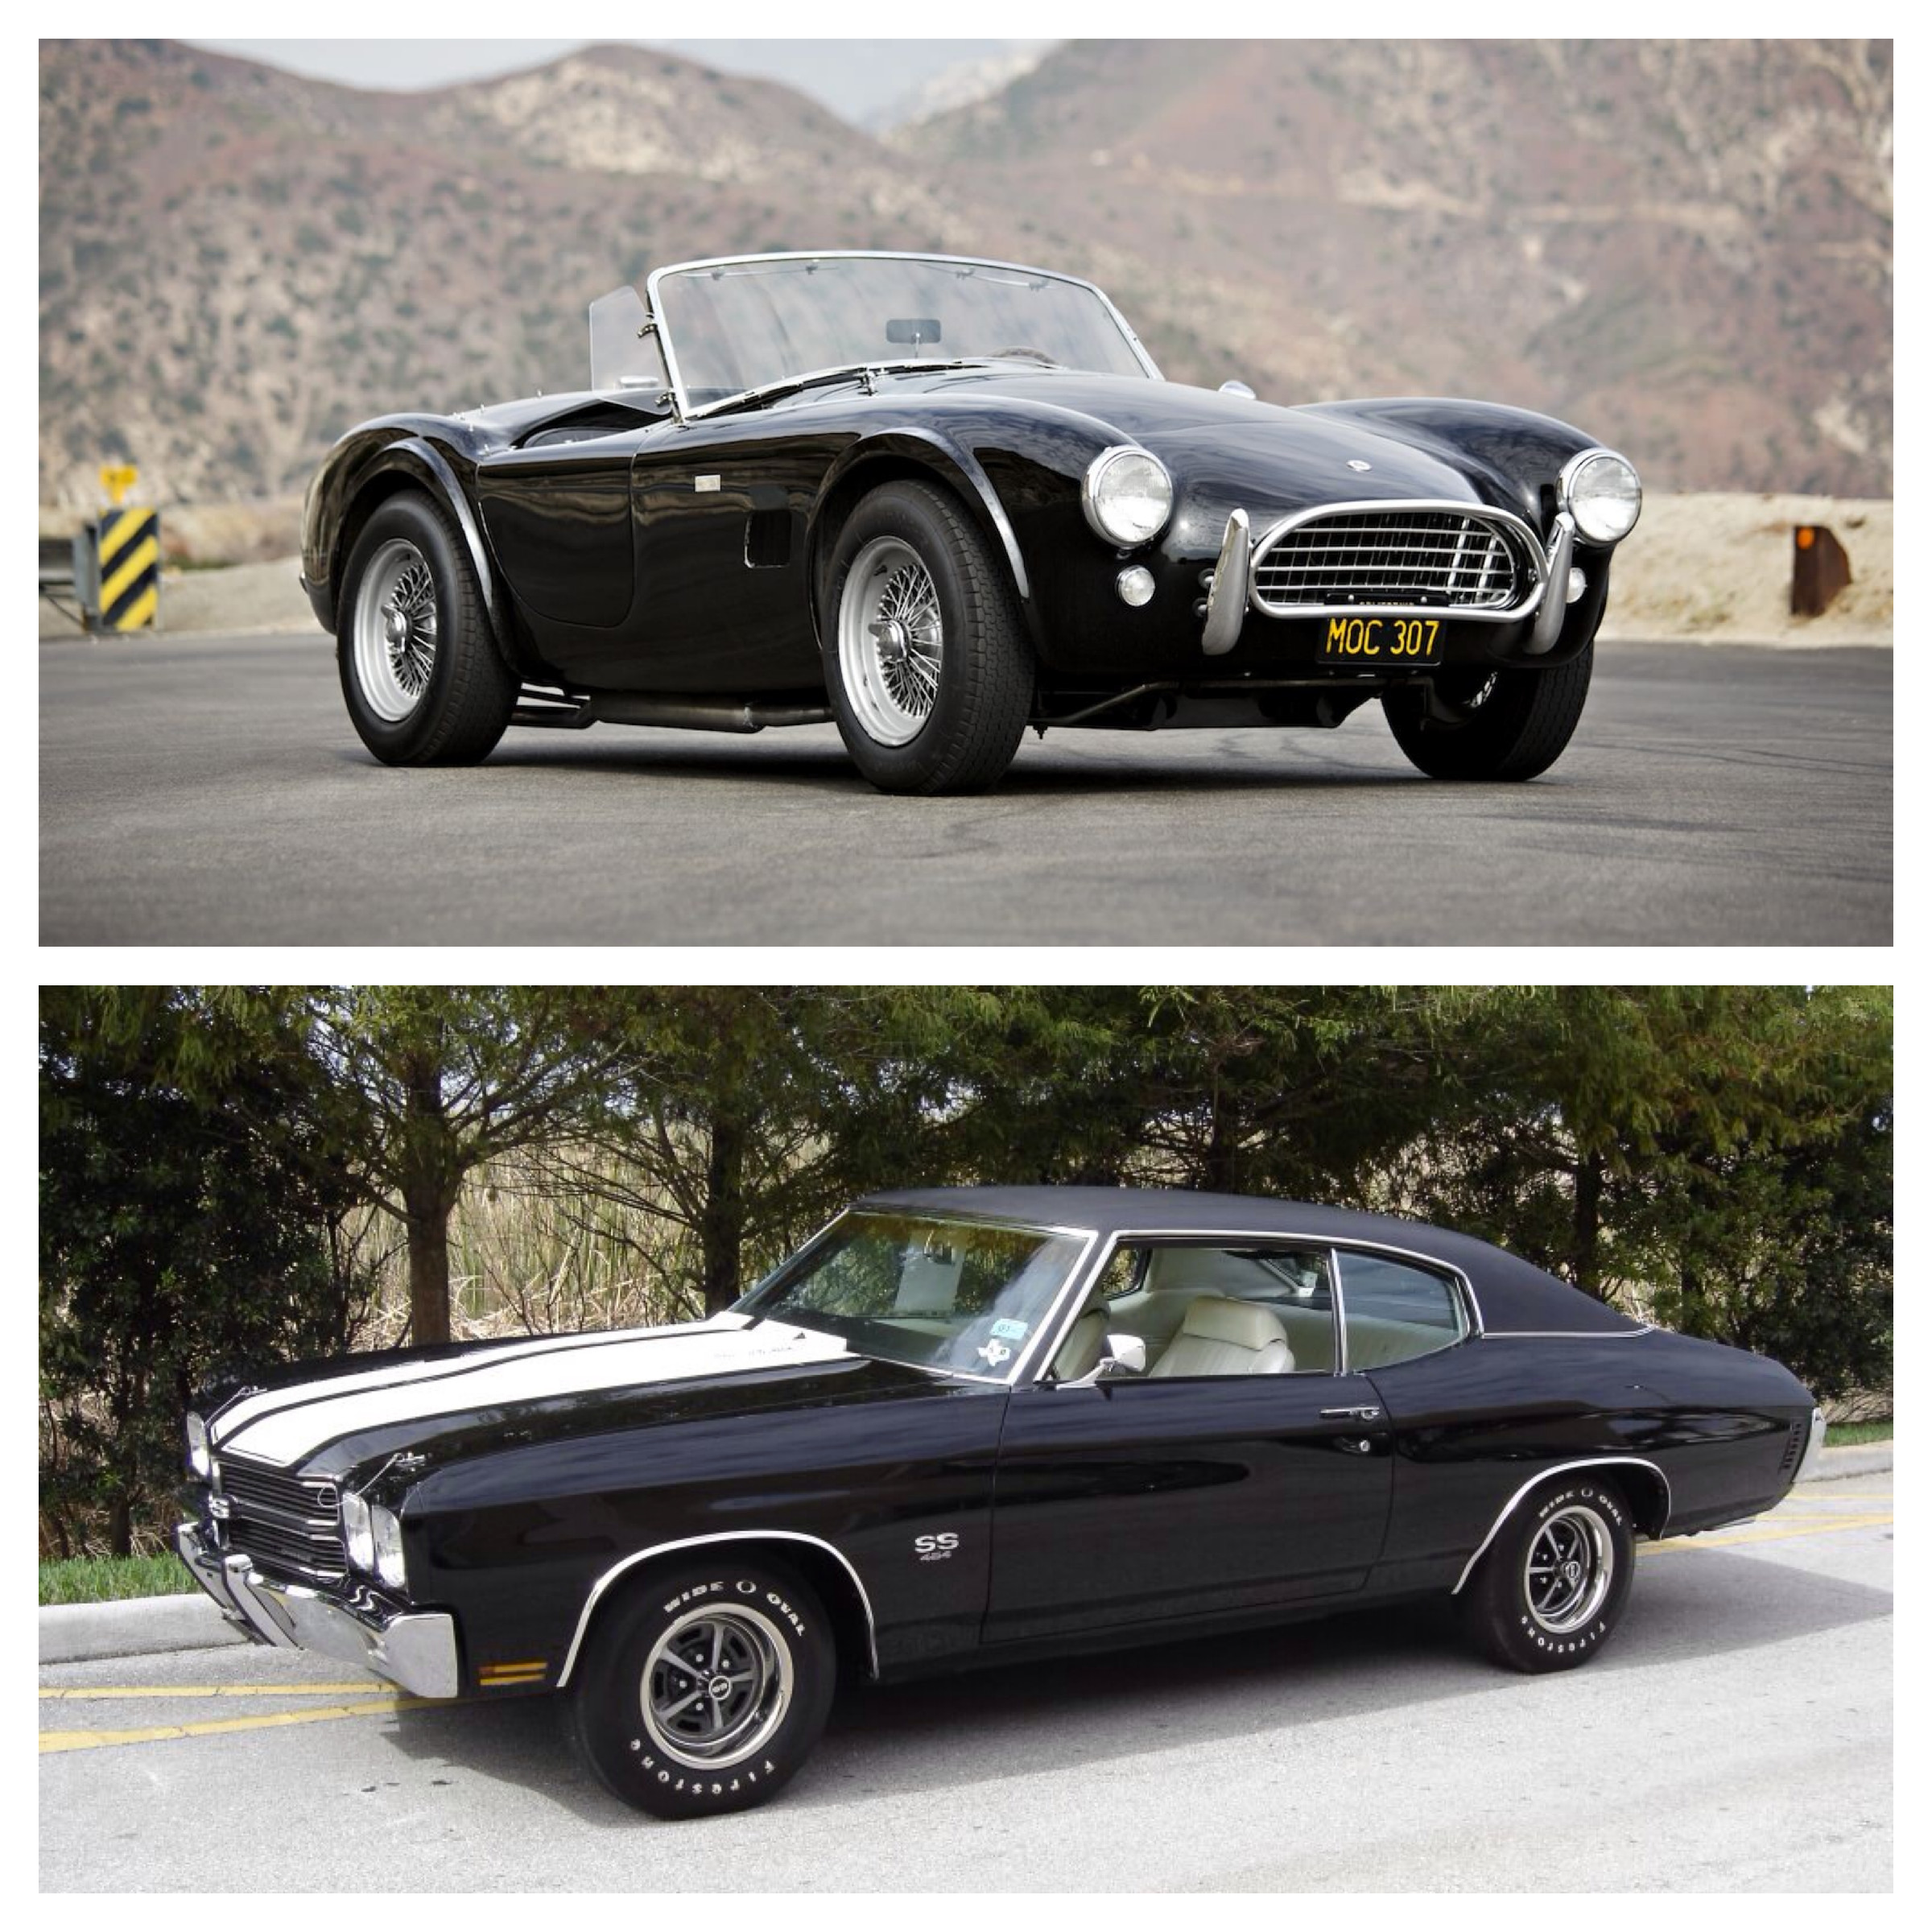 Cobra vs Chevelle